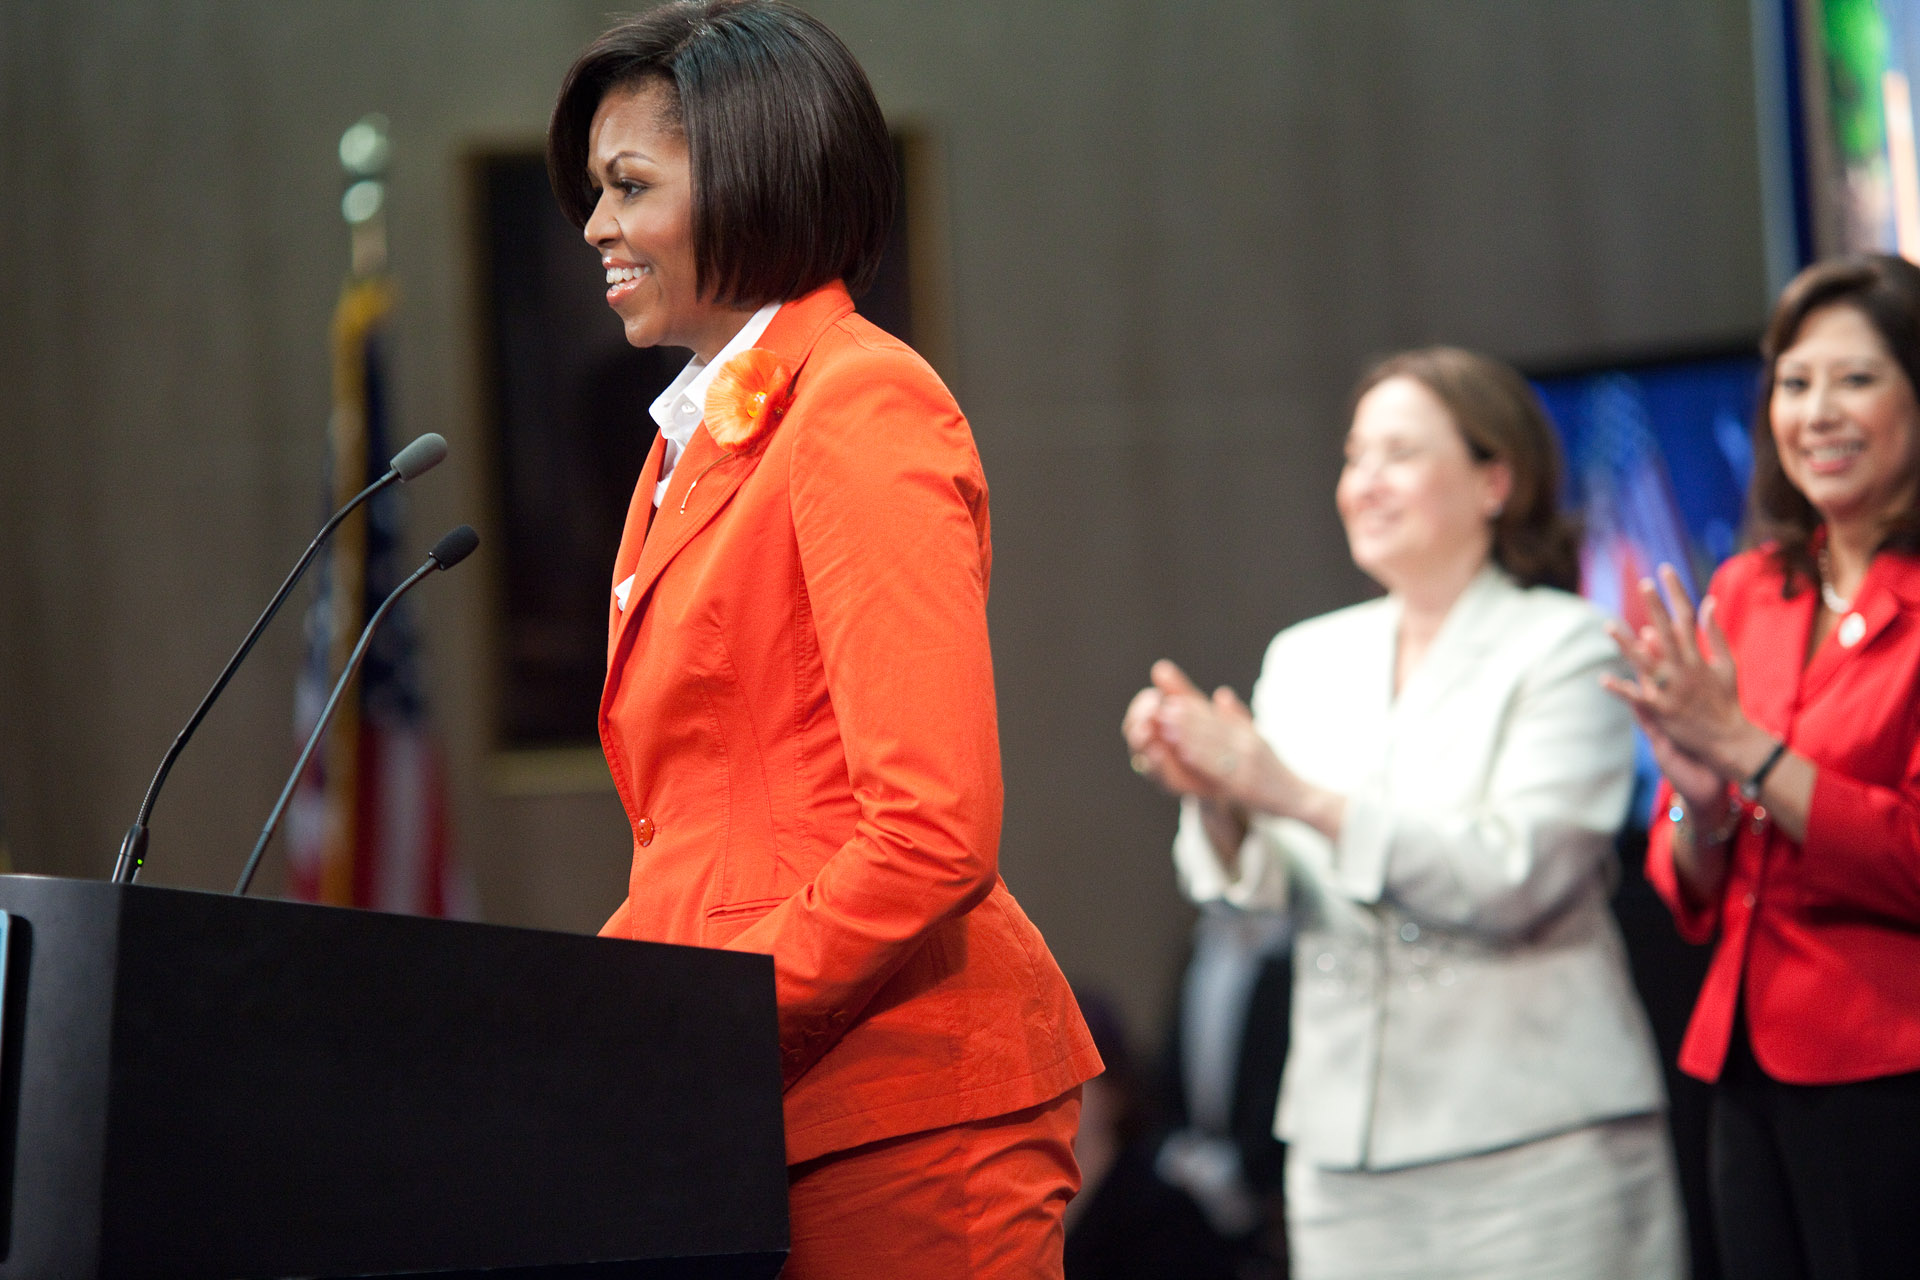 First Lady Michelle Obama Delivers Remarks in Honor of Women's Bureau's 90th Anniversary